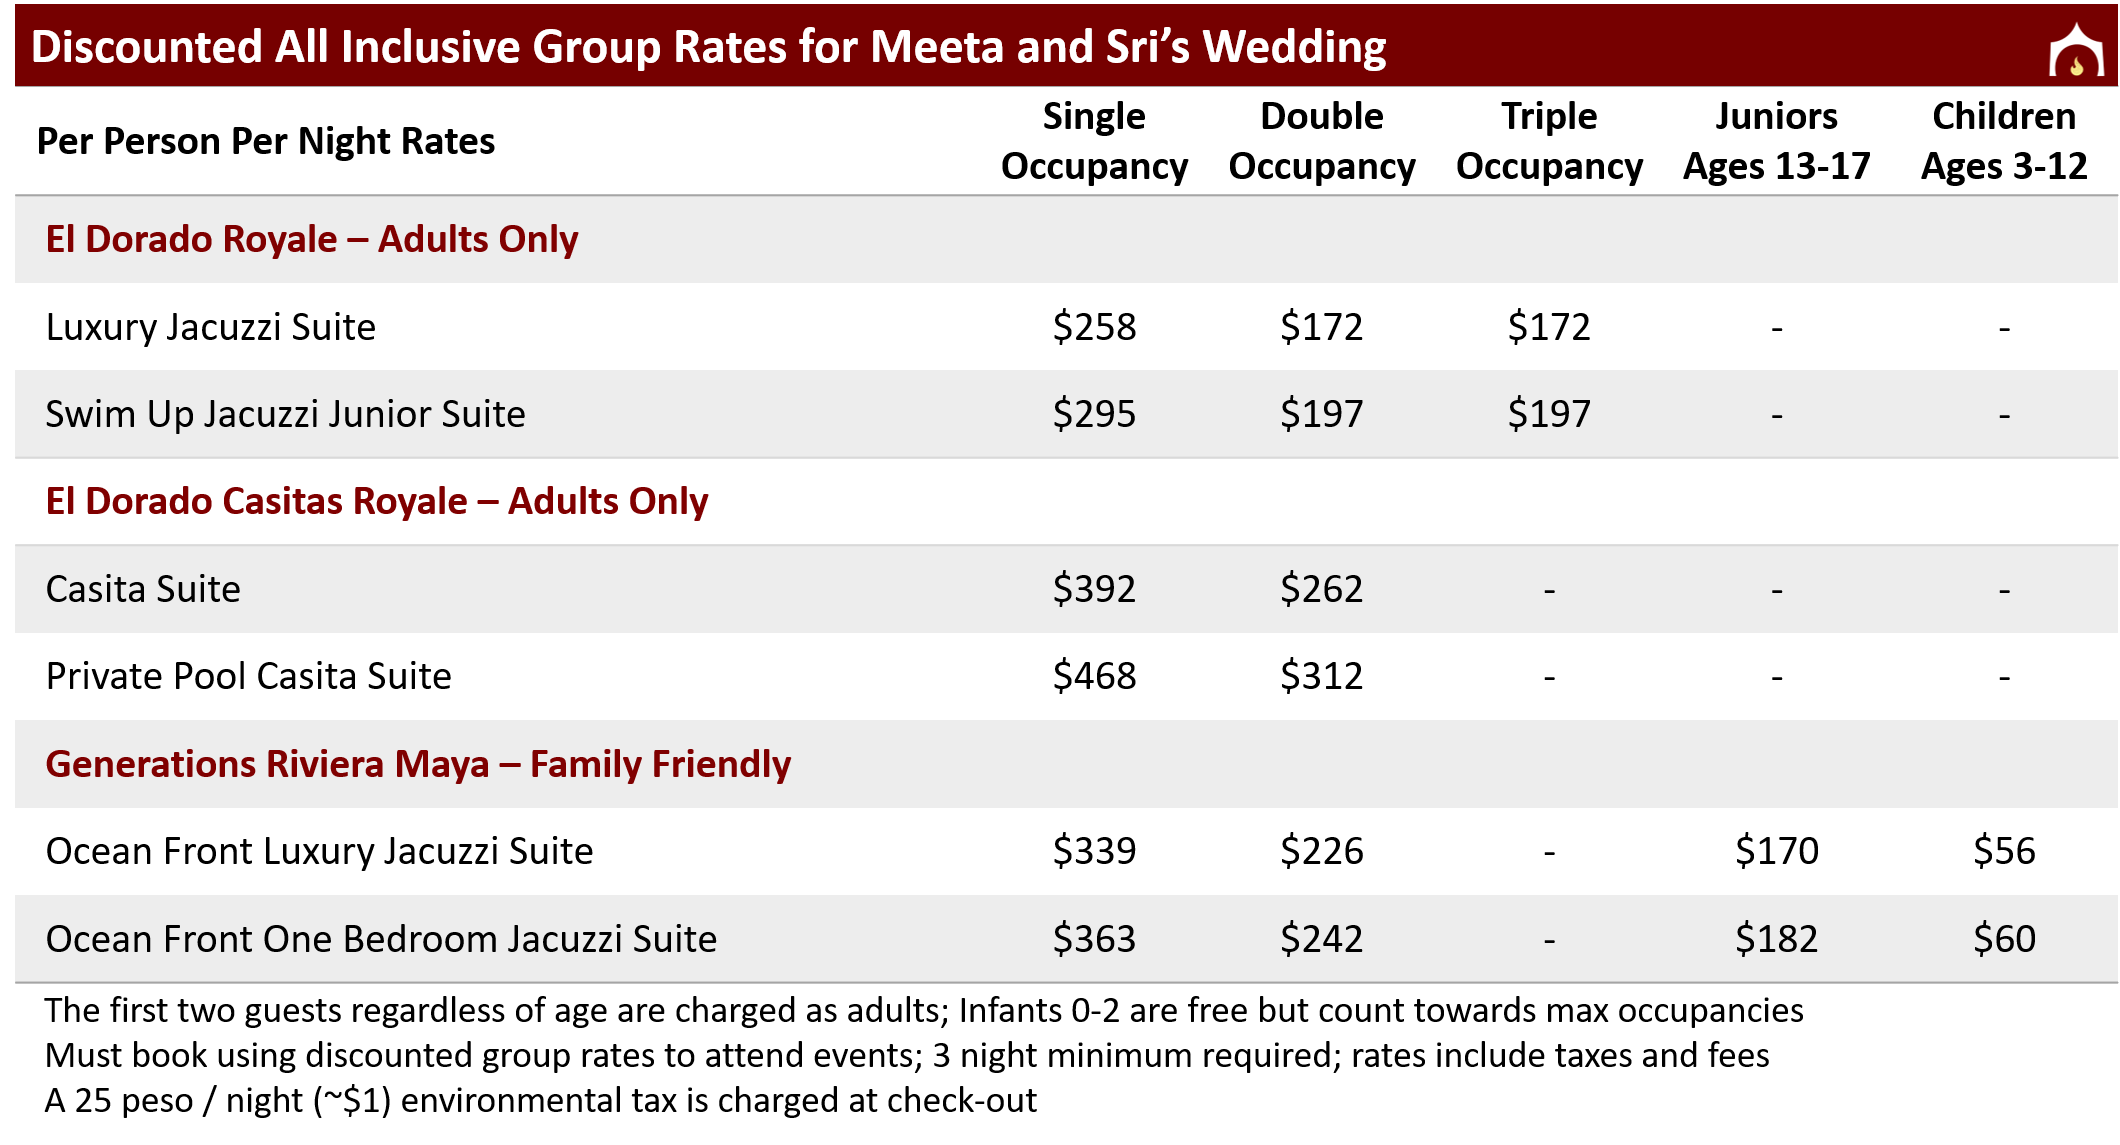 Discounted Group Rates for Meeta and Sri.png